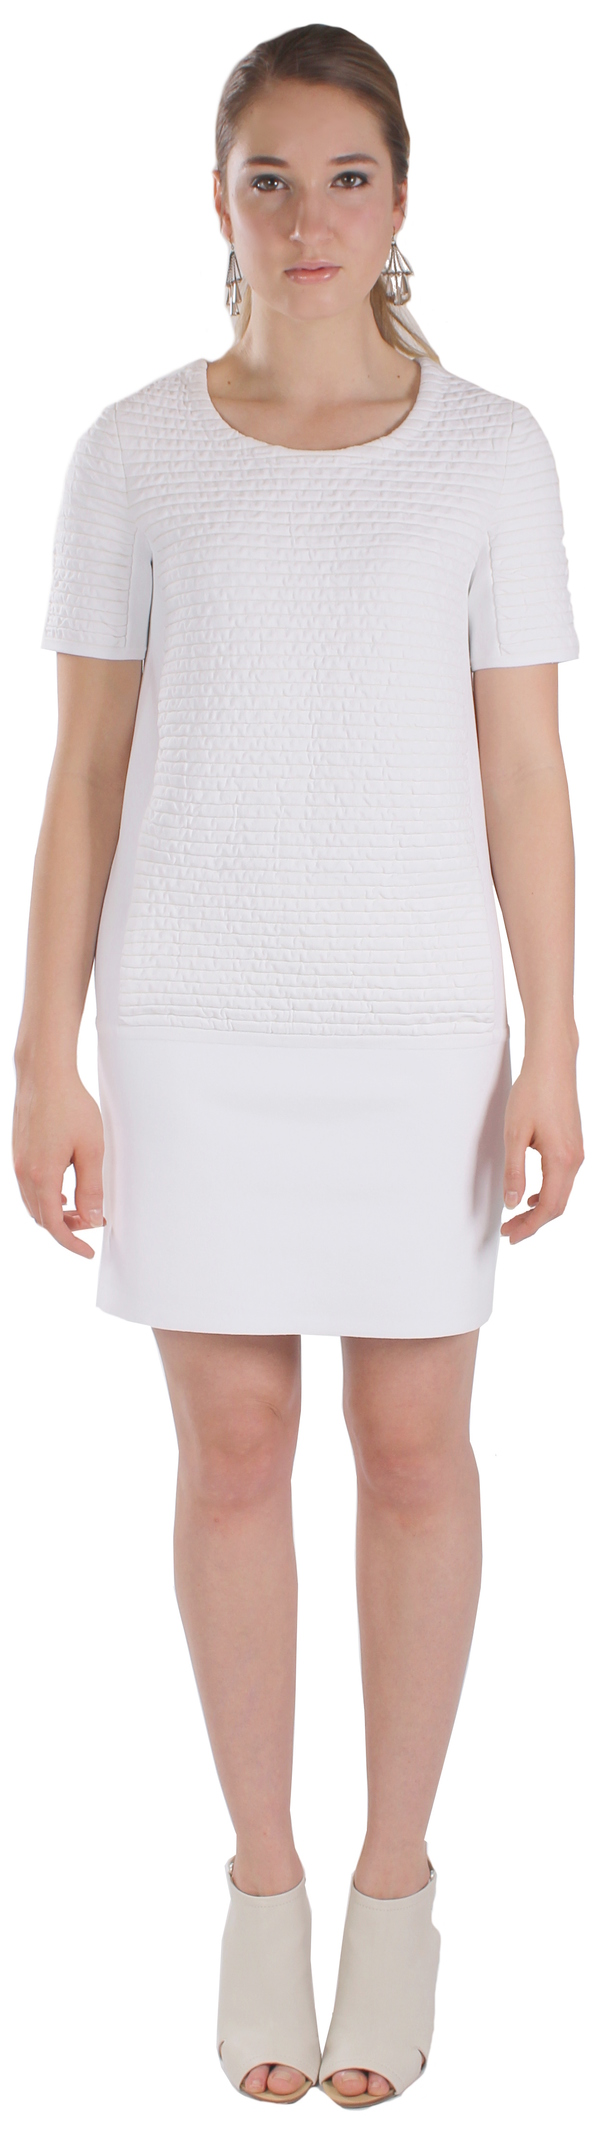 Rag & Bone Vonda Dress